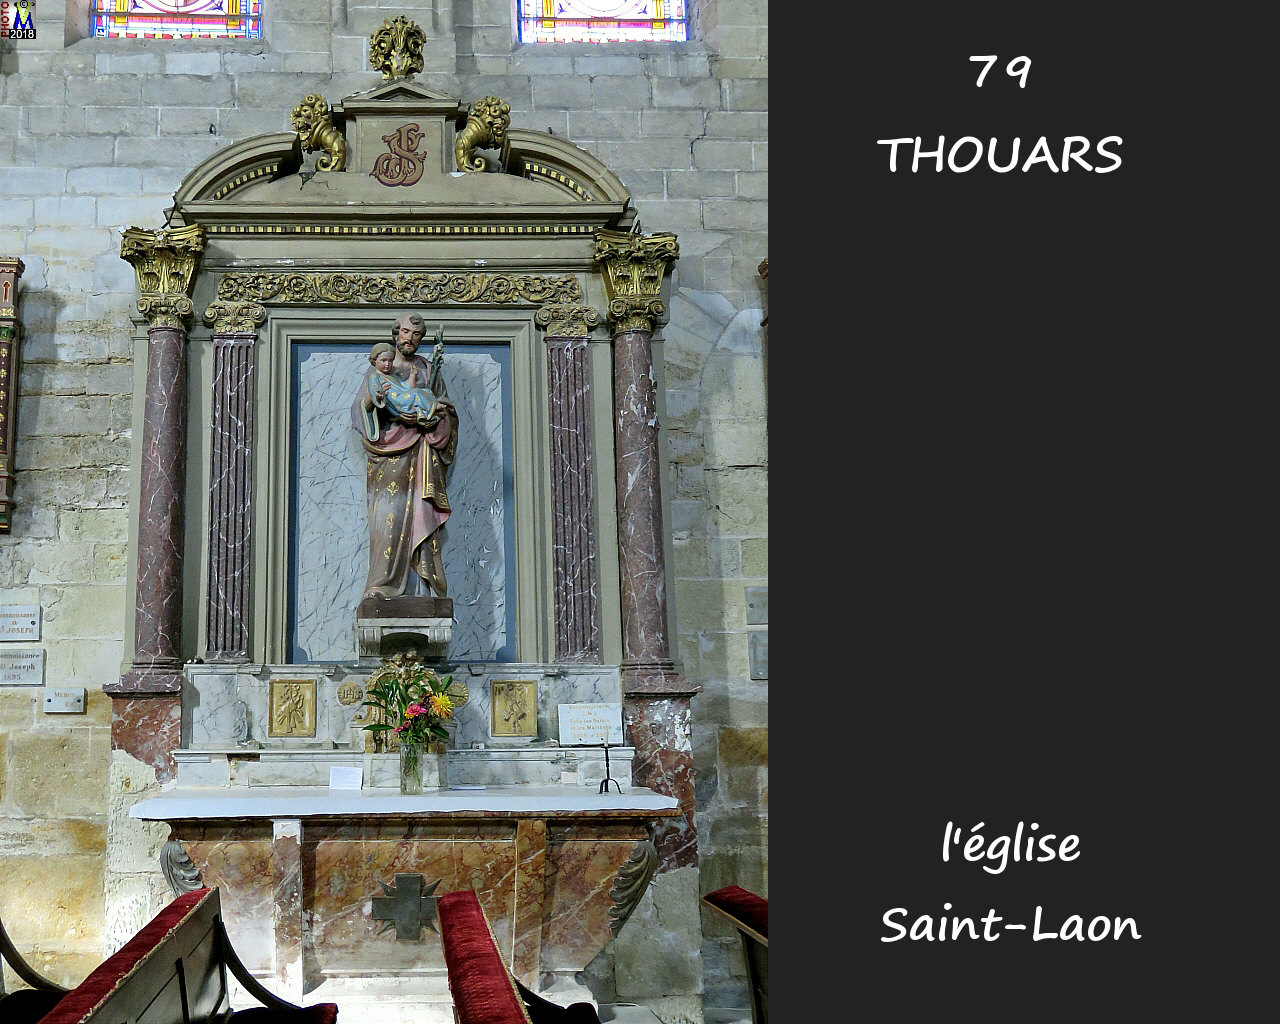 79THOUARS_egliseSL_1146.jpg